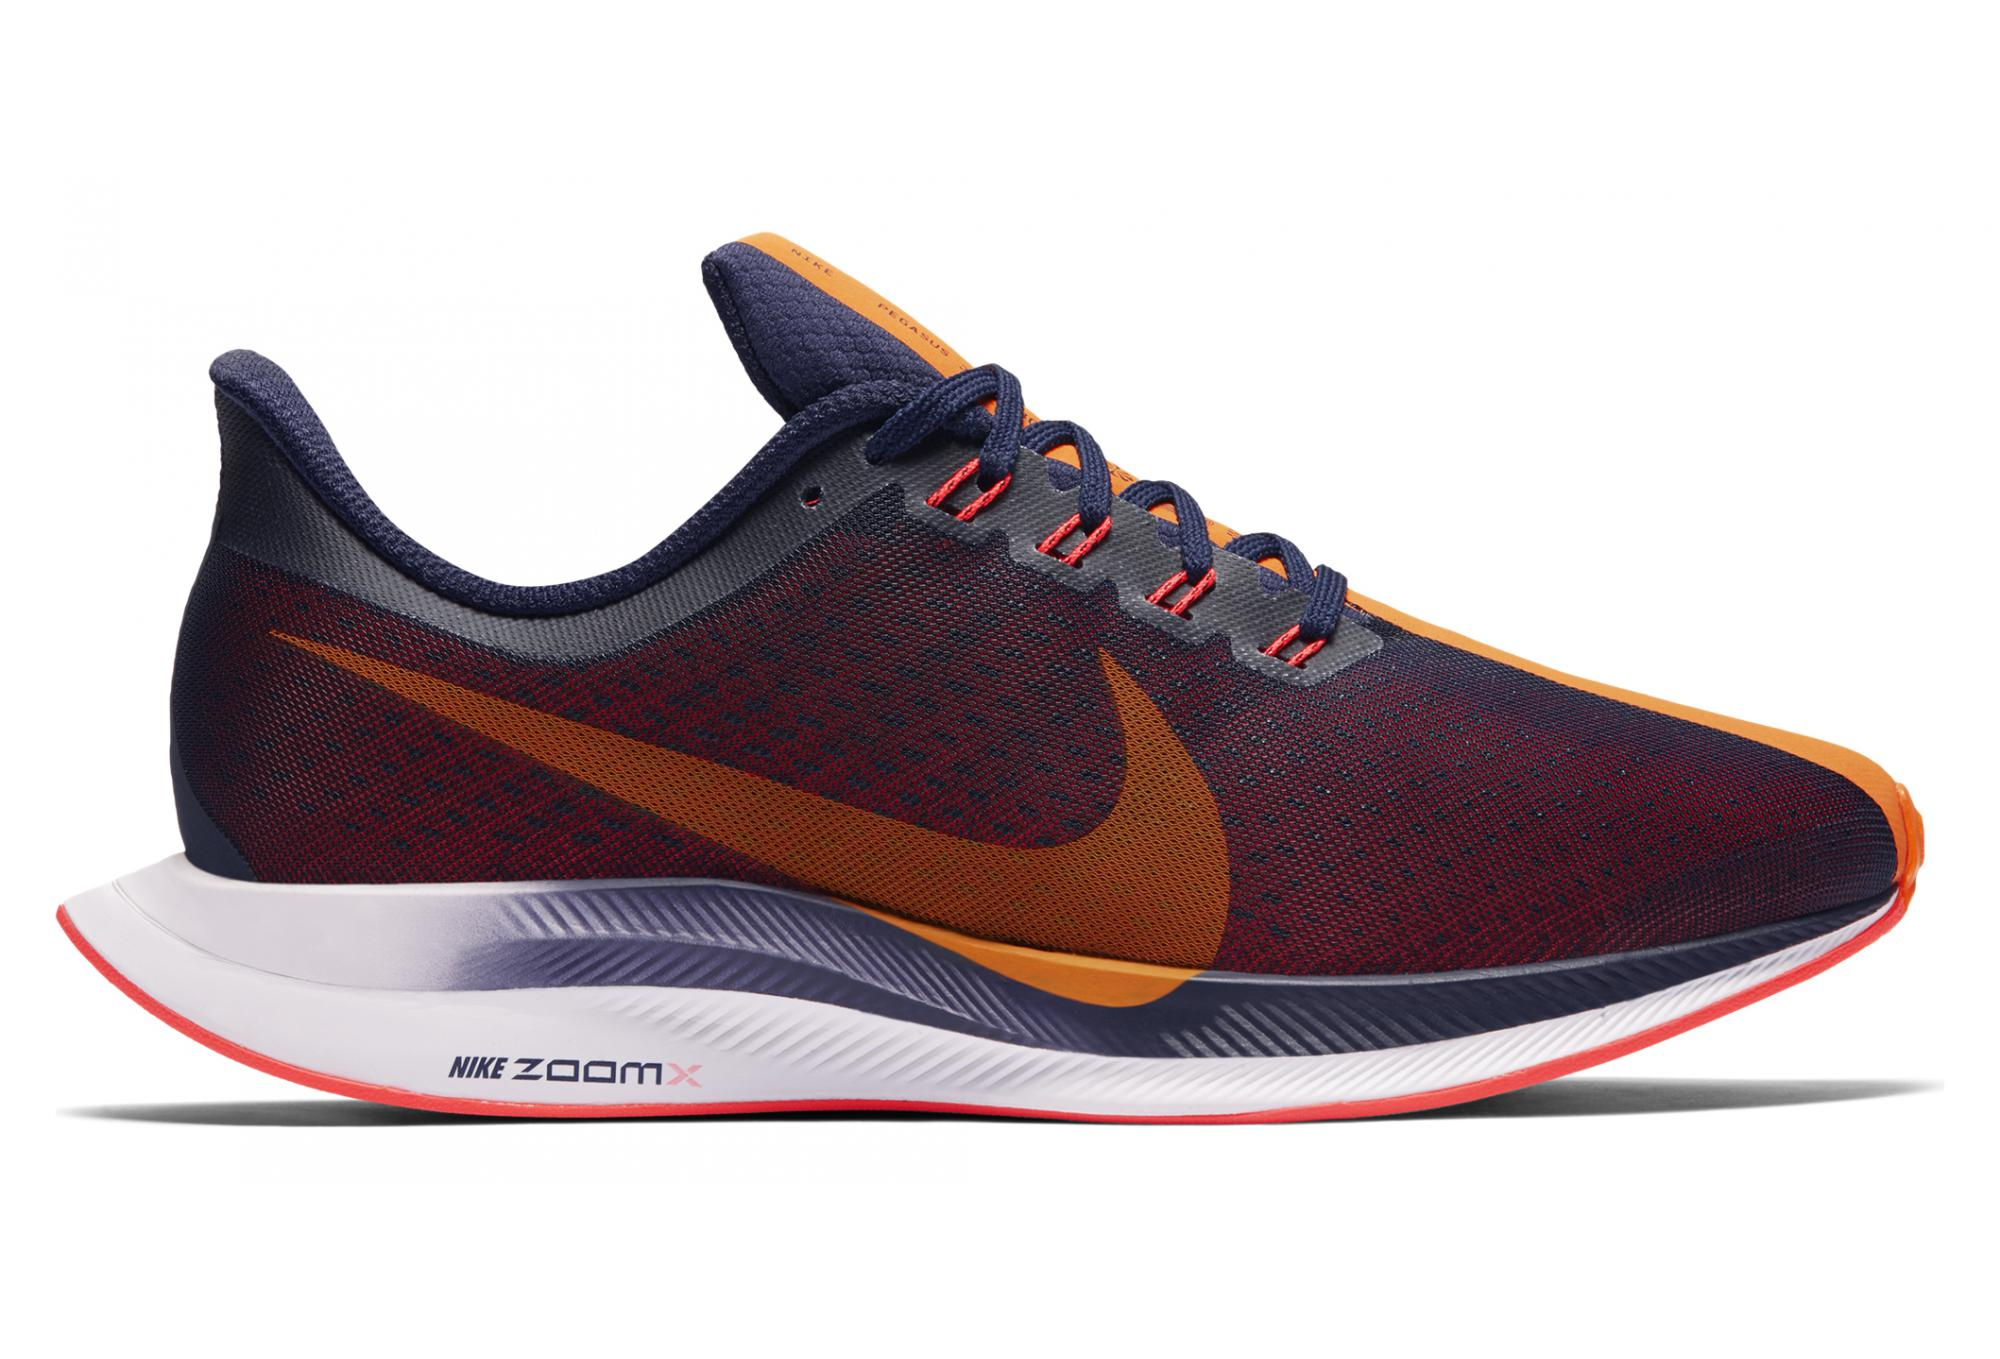 brand new 5b81f e18a6 Nike Zoom Pegasus 35 Turbo Women s Shoes Blue Orange Pink